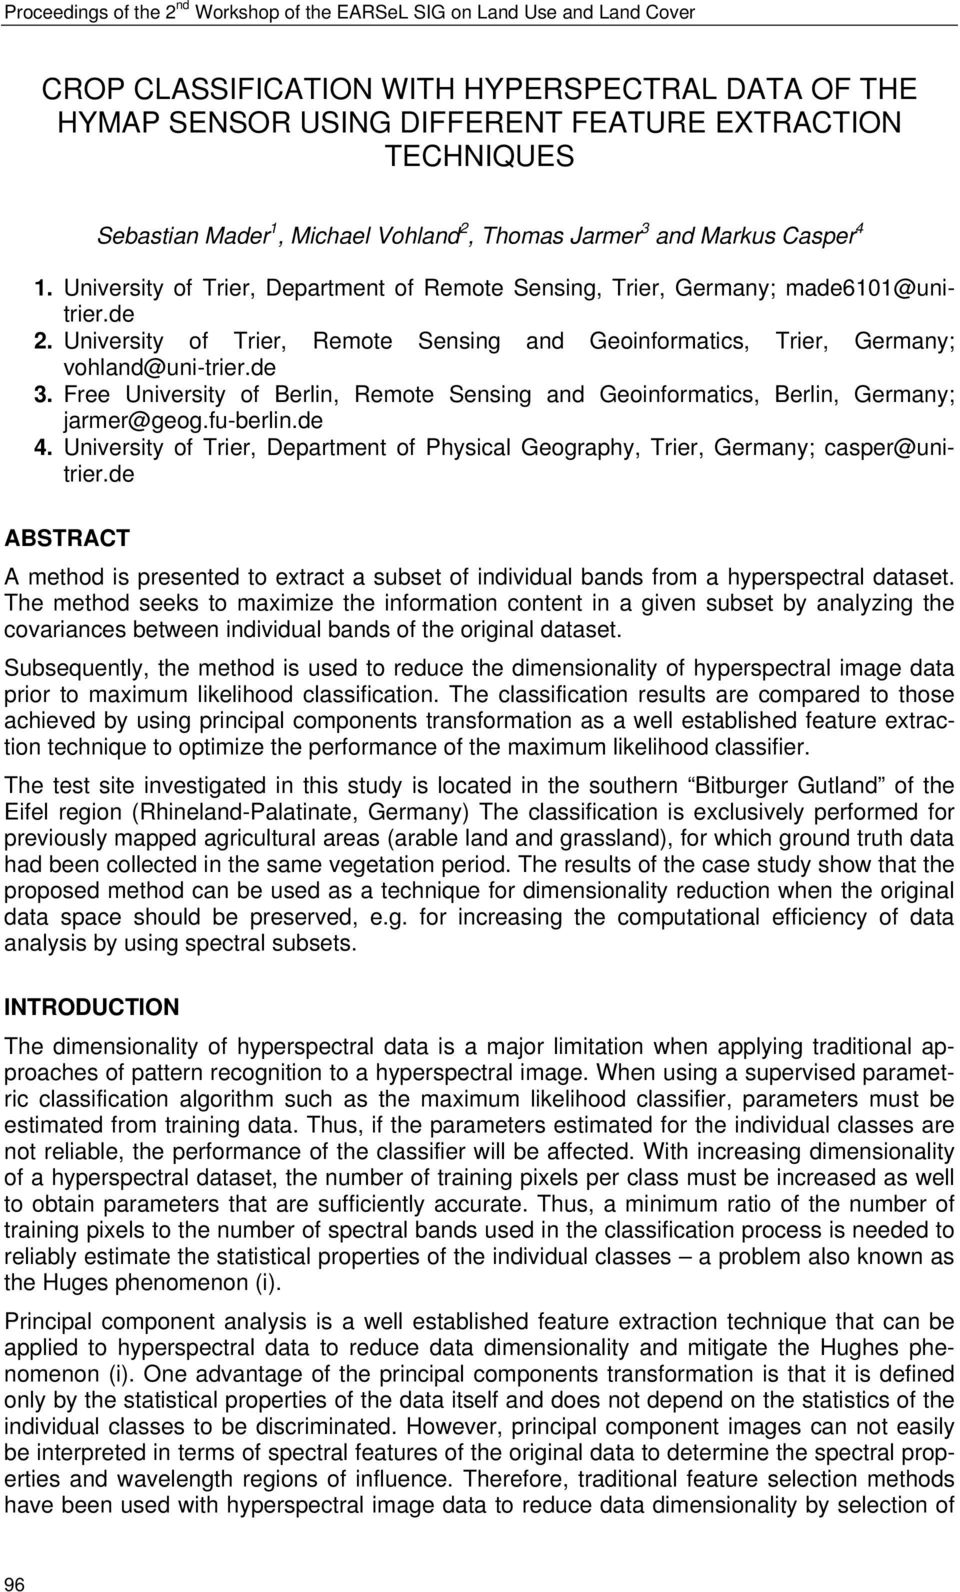 University of Trier, Remote Sensing and Geoinformatics, Trier, Germany; vohland@uni-trier.de 3. Free University of Berlin, Remote Sensing and Geoinformatics, Berlin, Germany; jarmer@geog.fu-berlin.